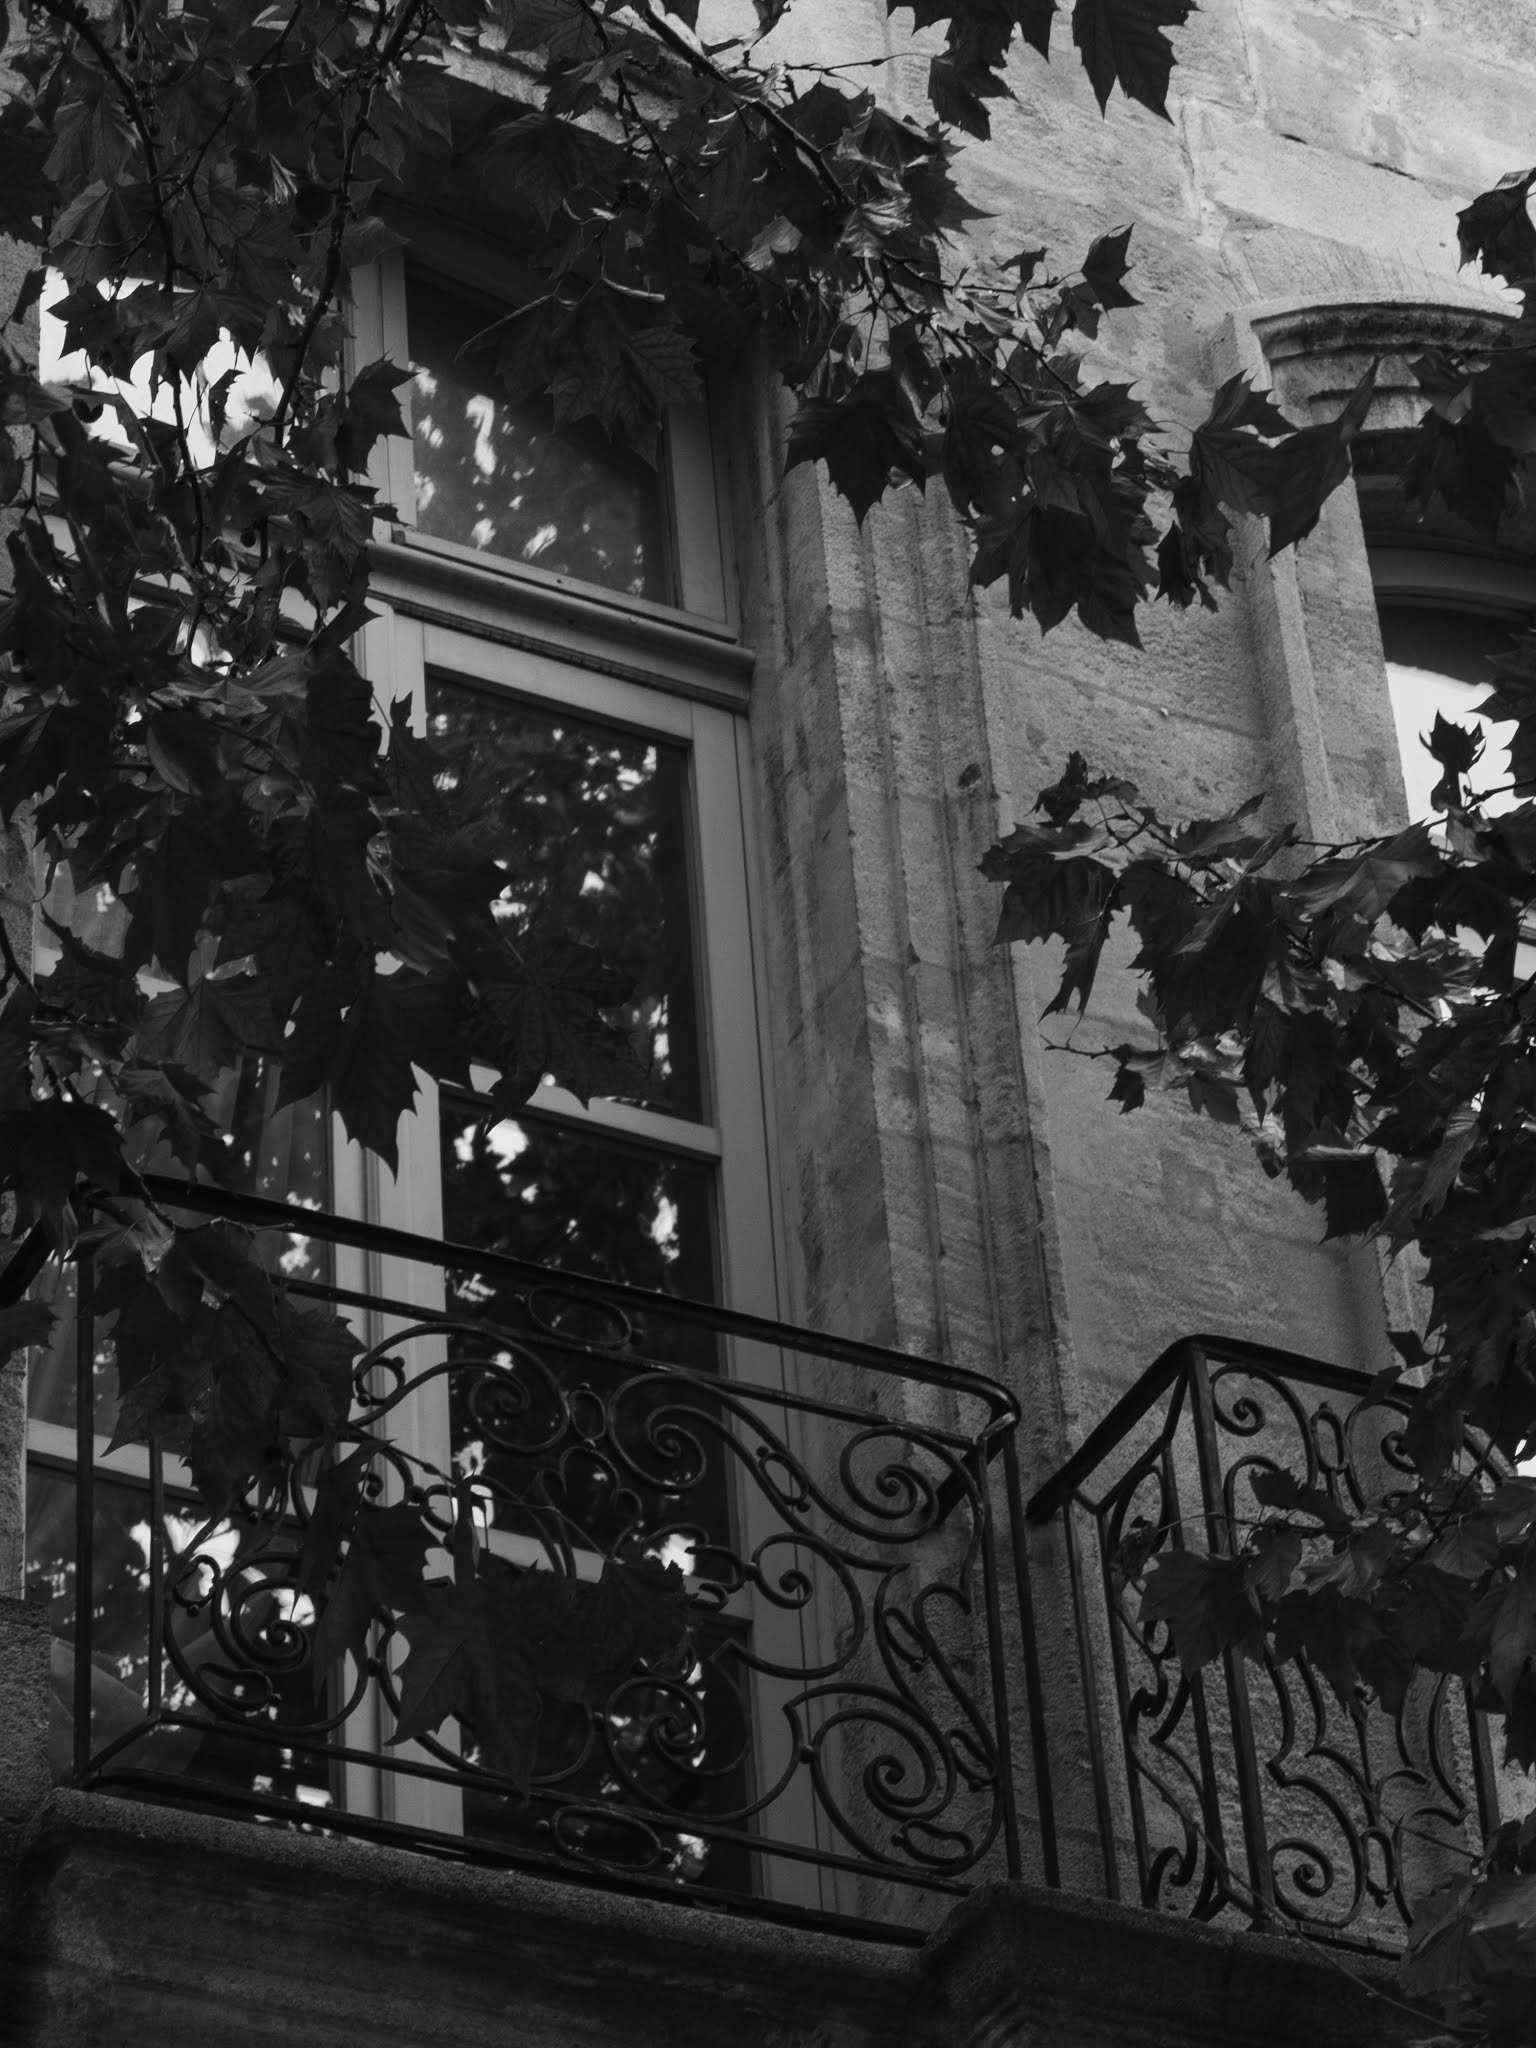 Black and white sycamore tree branches in front of a tall window in Aix-en-Provence.